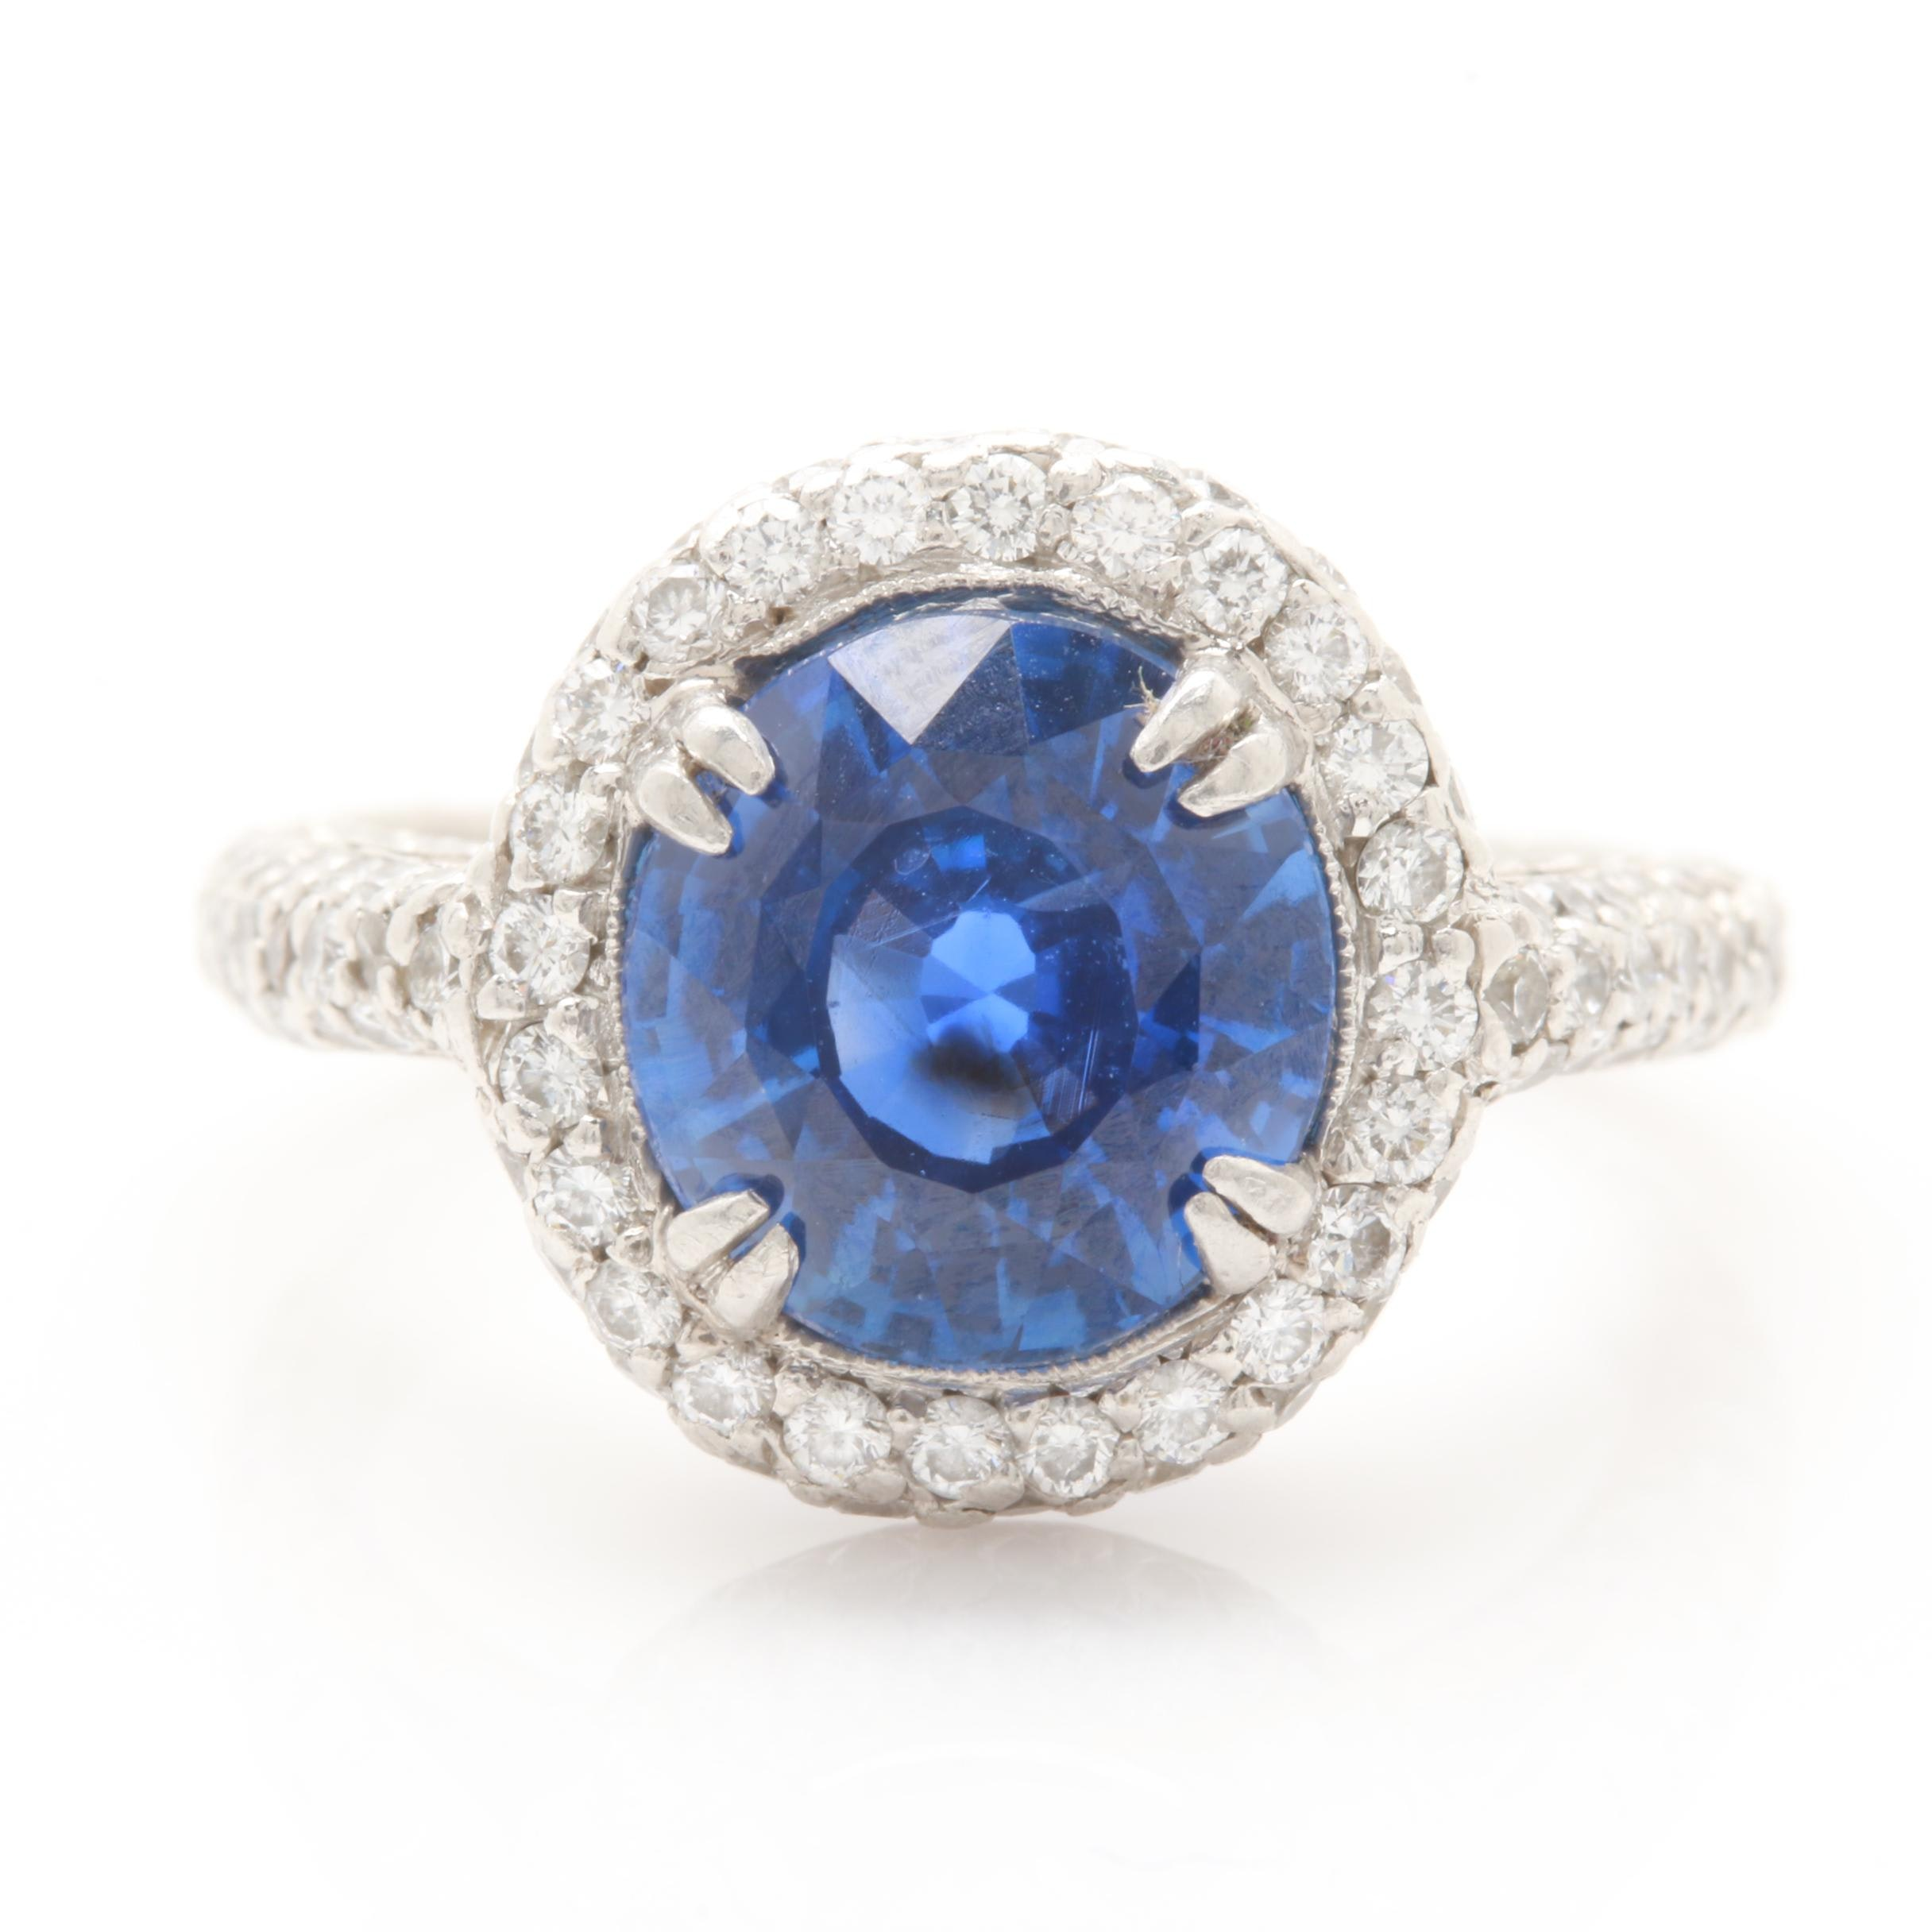 Phillip Press Platinum 3.77 CT Blue Sapphire and 1.66 CTW Diamond Ring